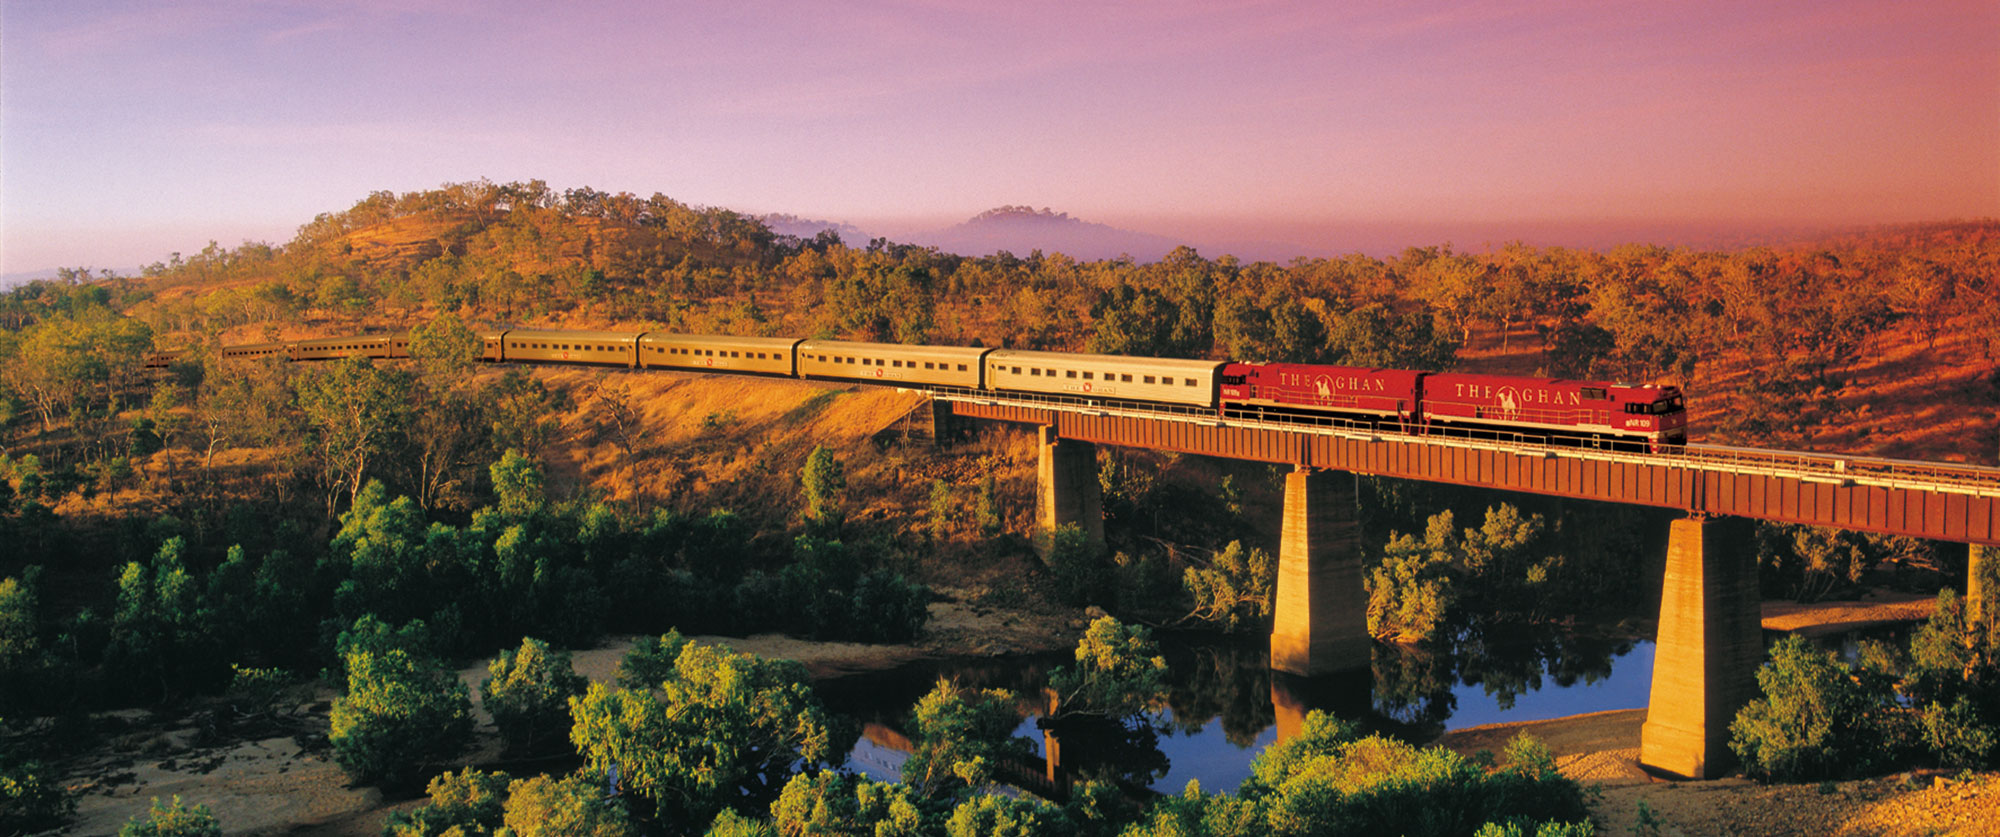 Australian Outback Vacation - The Ghan